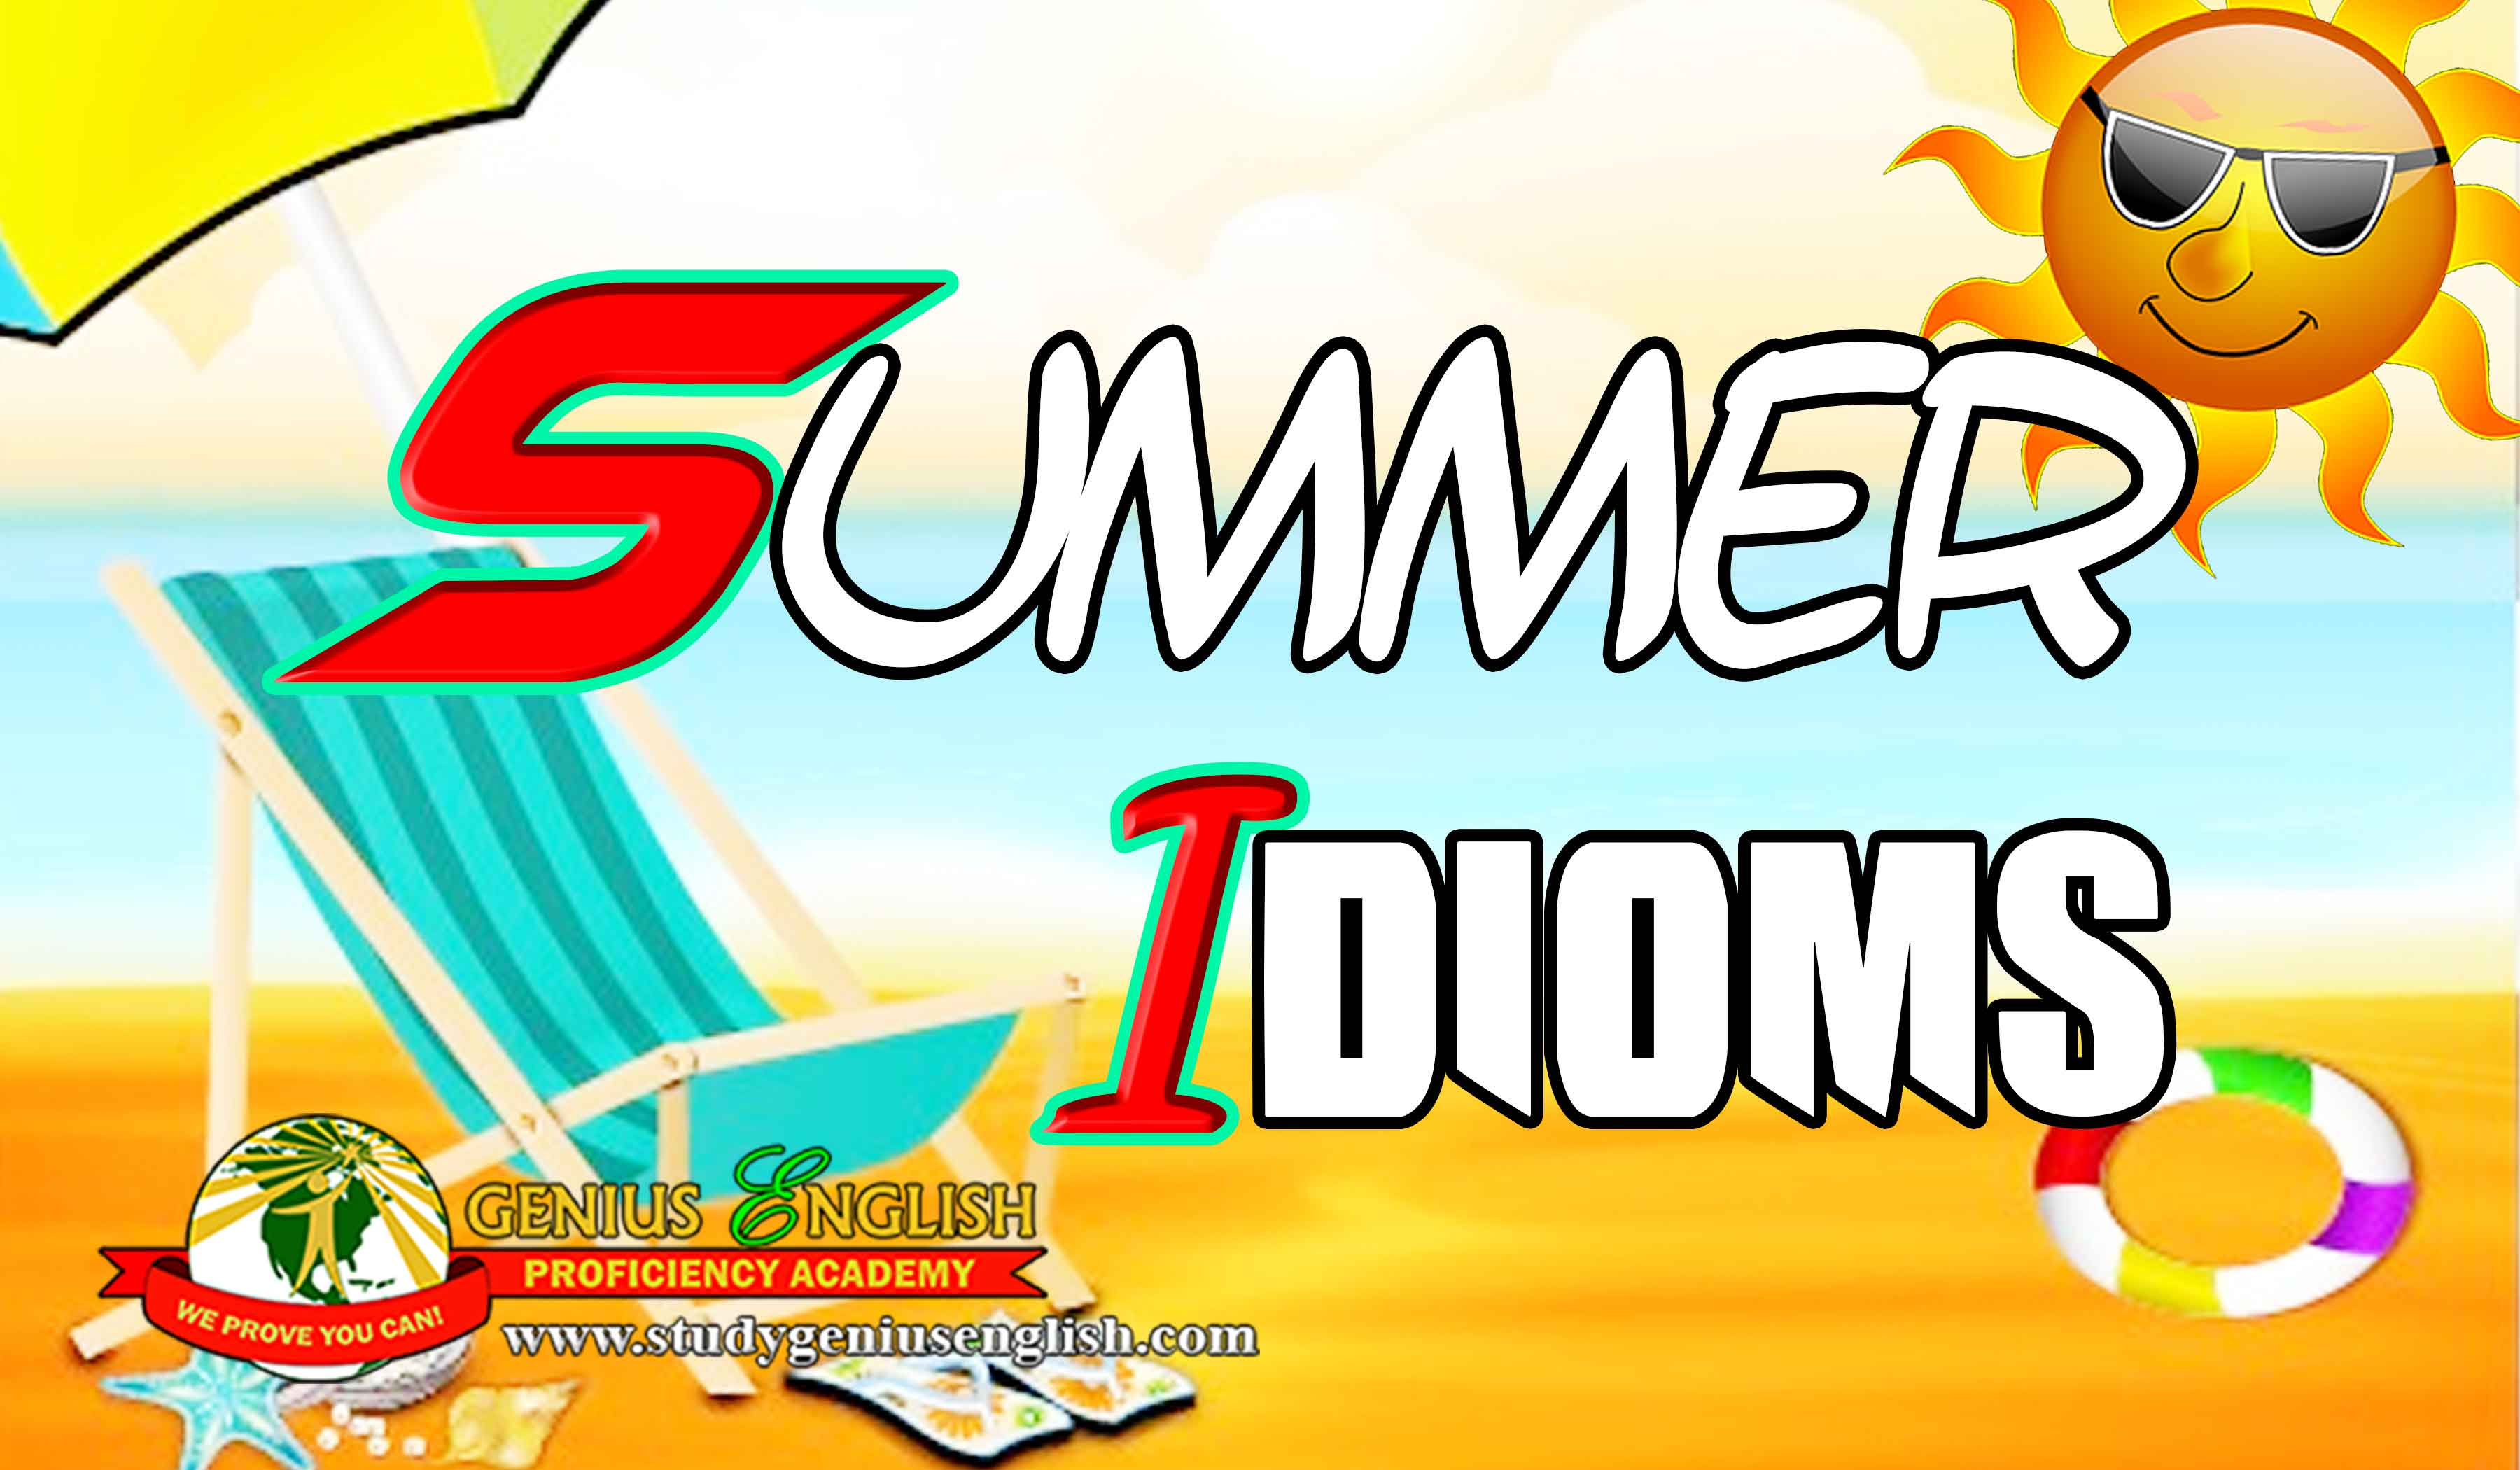 idioms for summer - study english in the Philippines